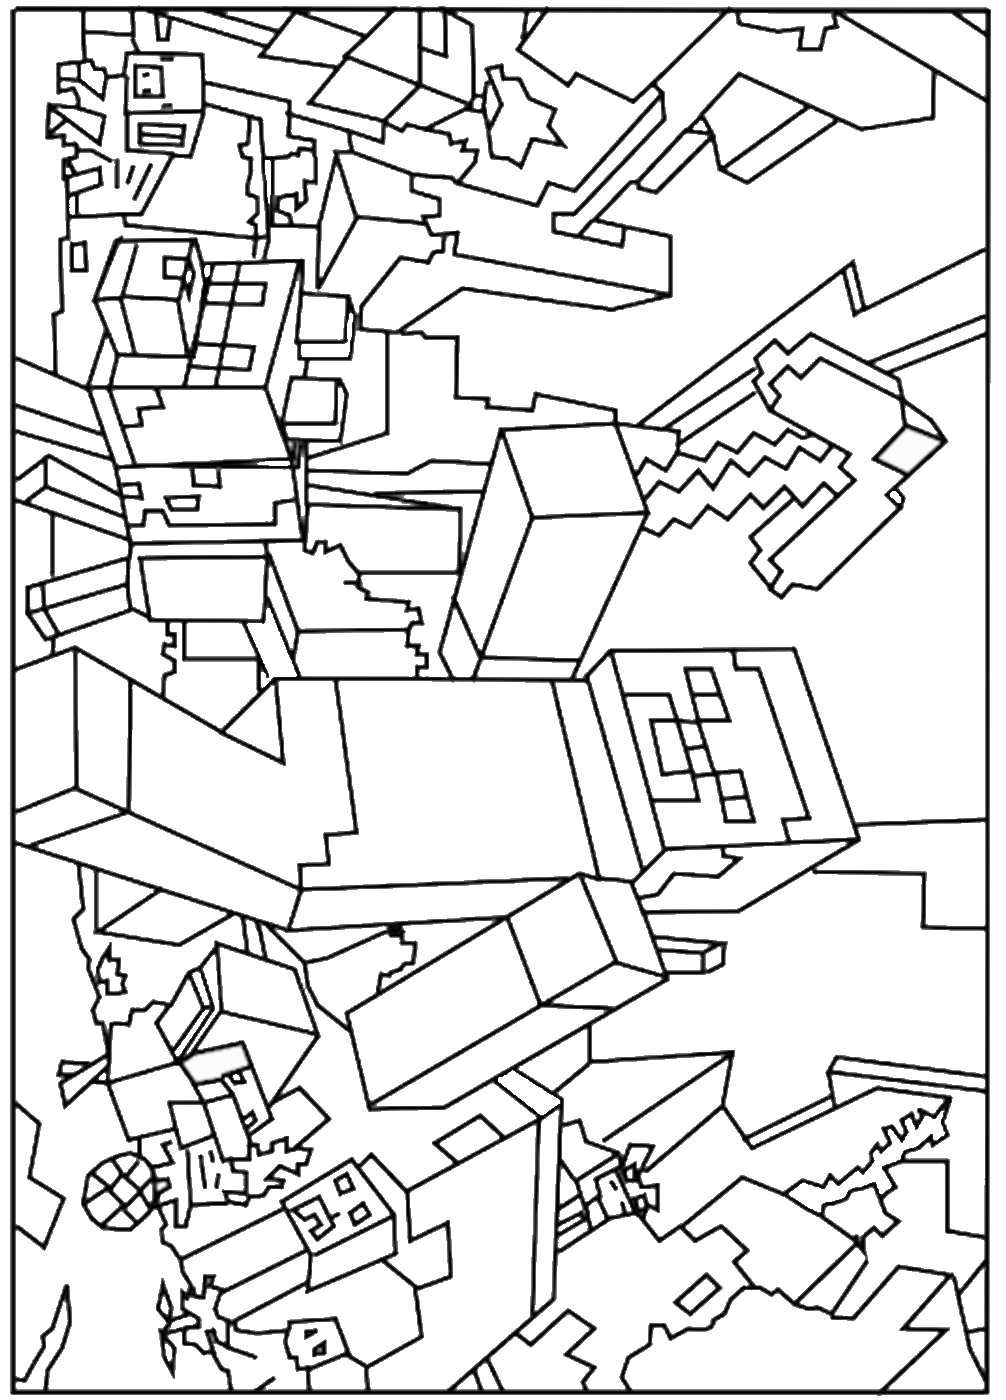 colouring pages of minecraft minecraft coloring pages best coloring pages for kids minecraft of colouring pages